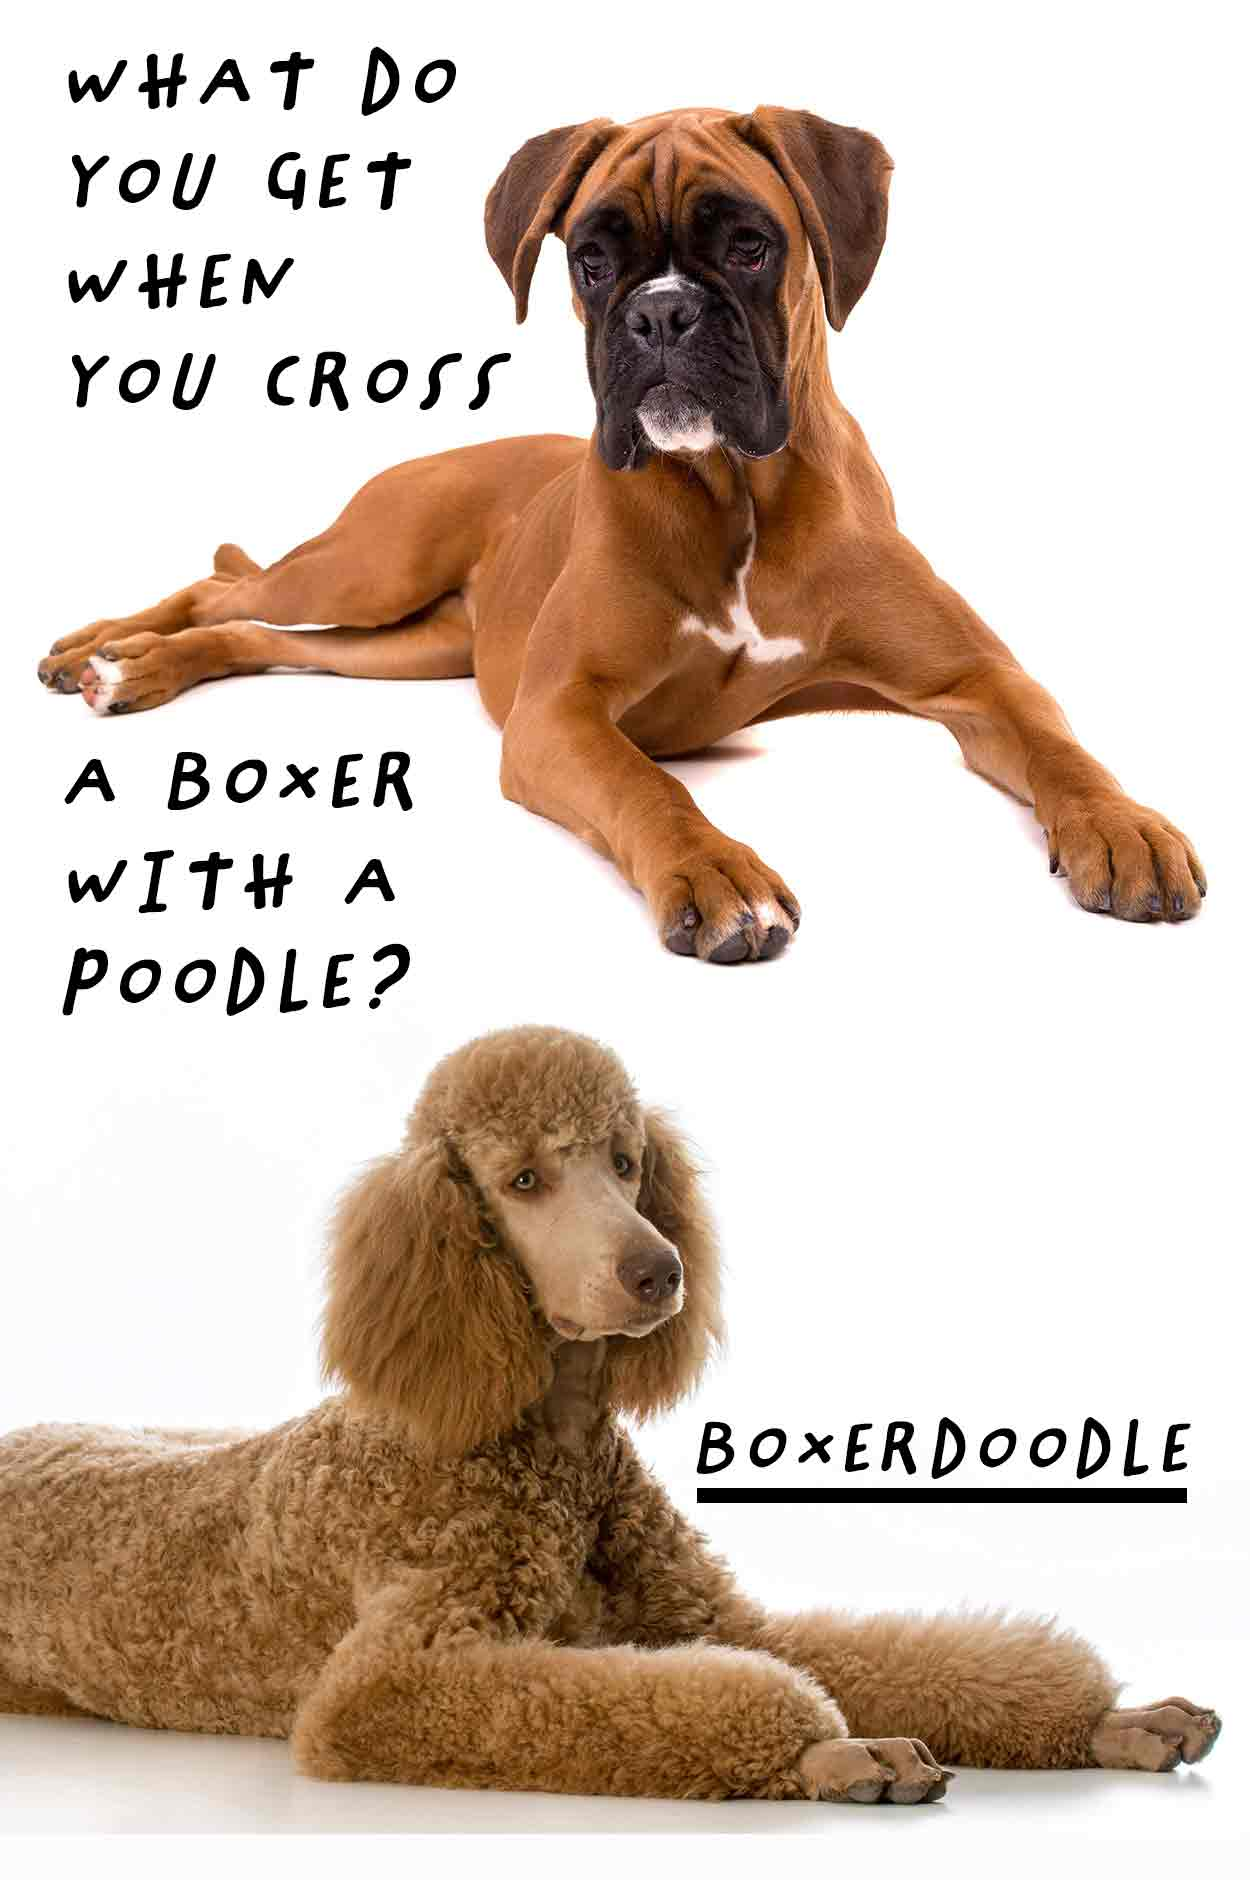 Boxerdoodle the Boxer Poodle mix - Dog breed reviews